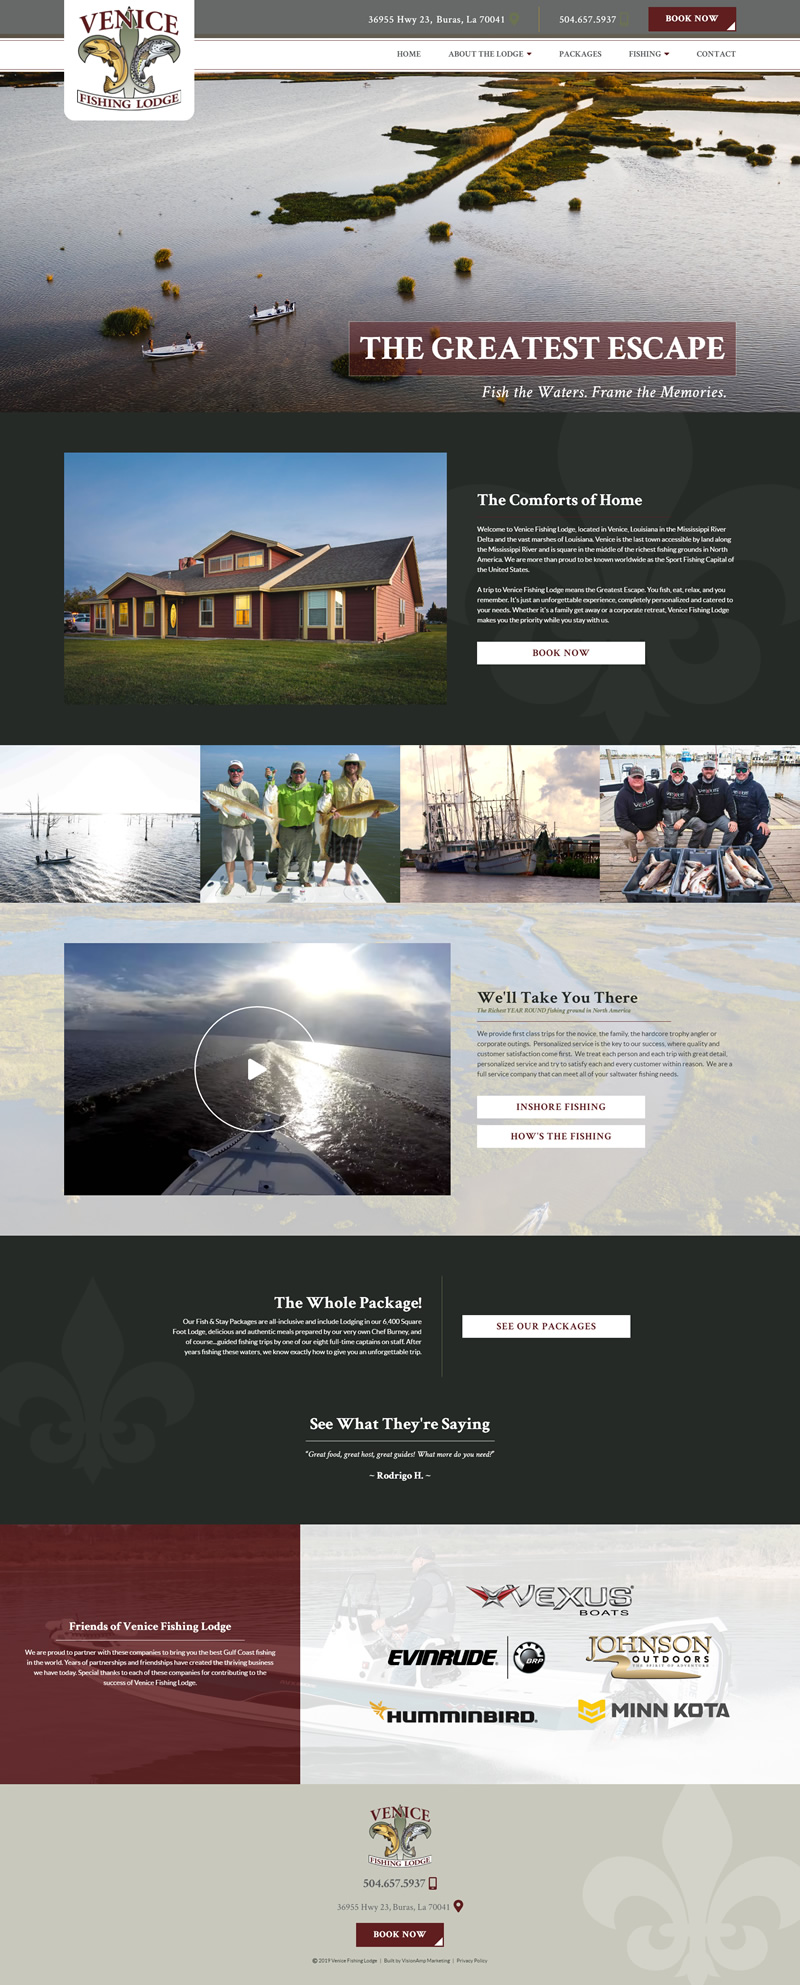 Venice Fishing Lodge Full Web Design Image